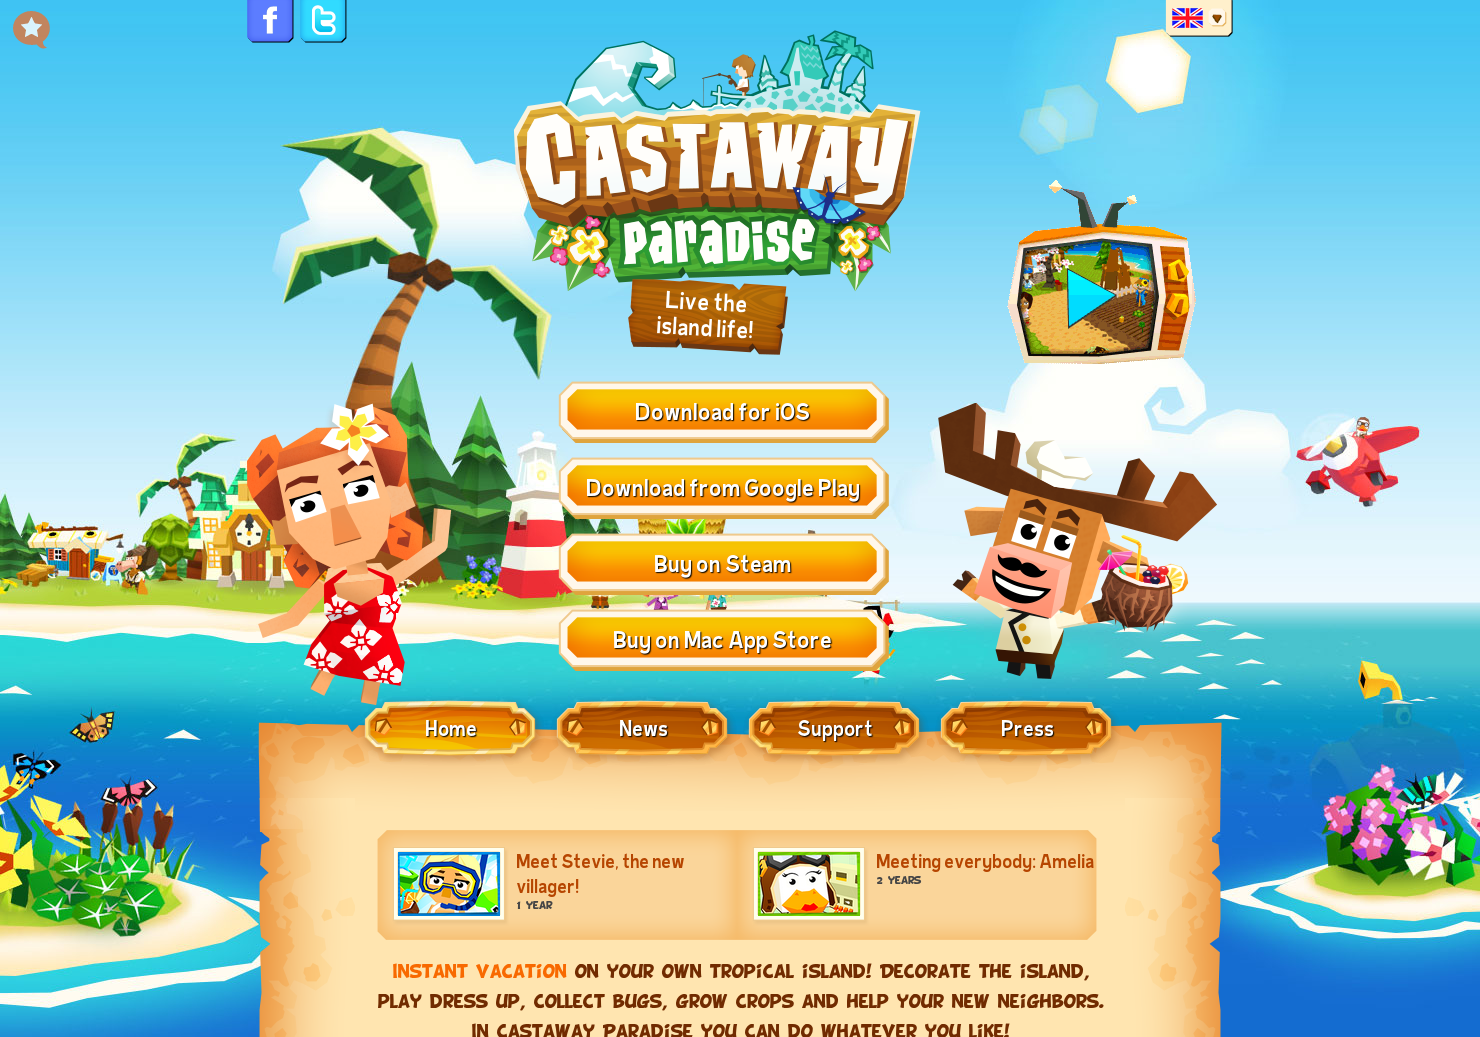 Castaway Paradise - 'Animal Crossing'-like game for the iPhone and